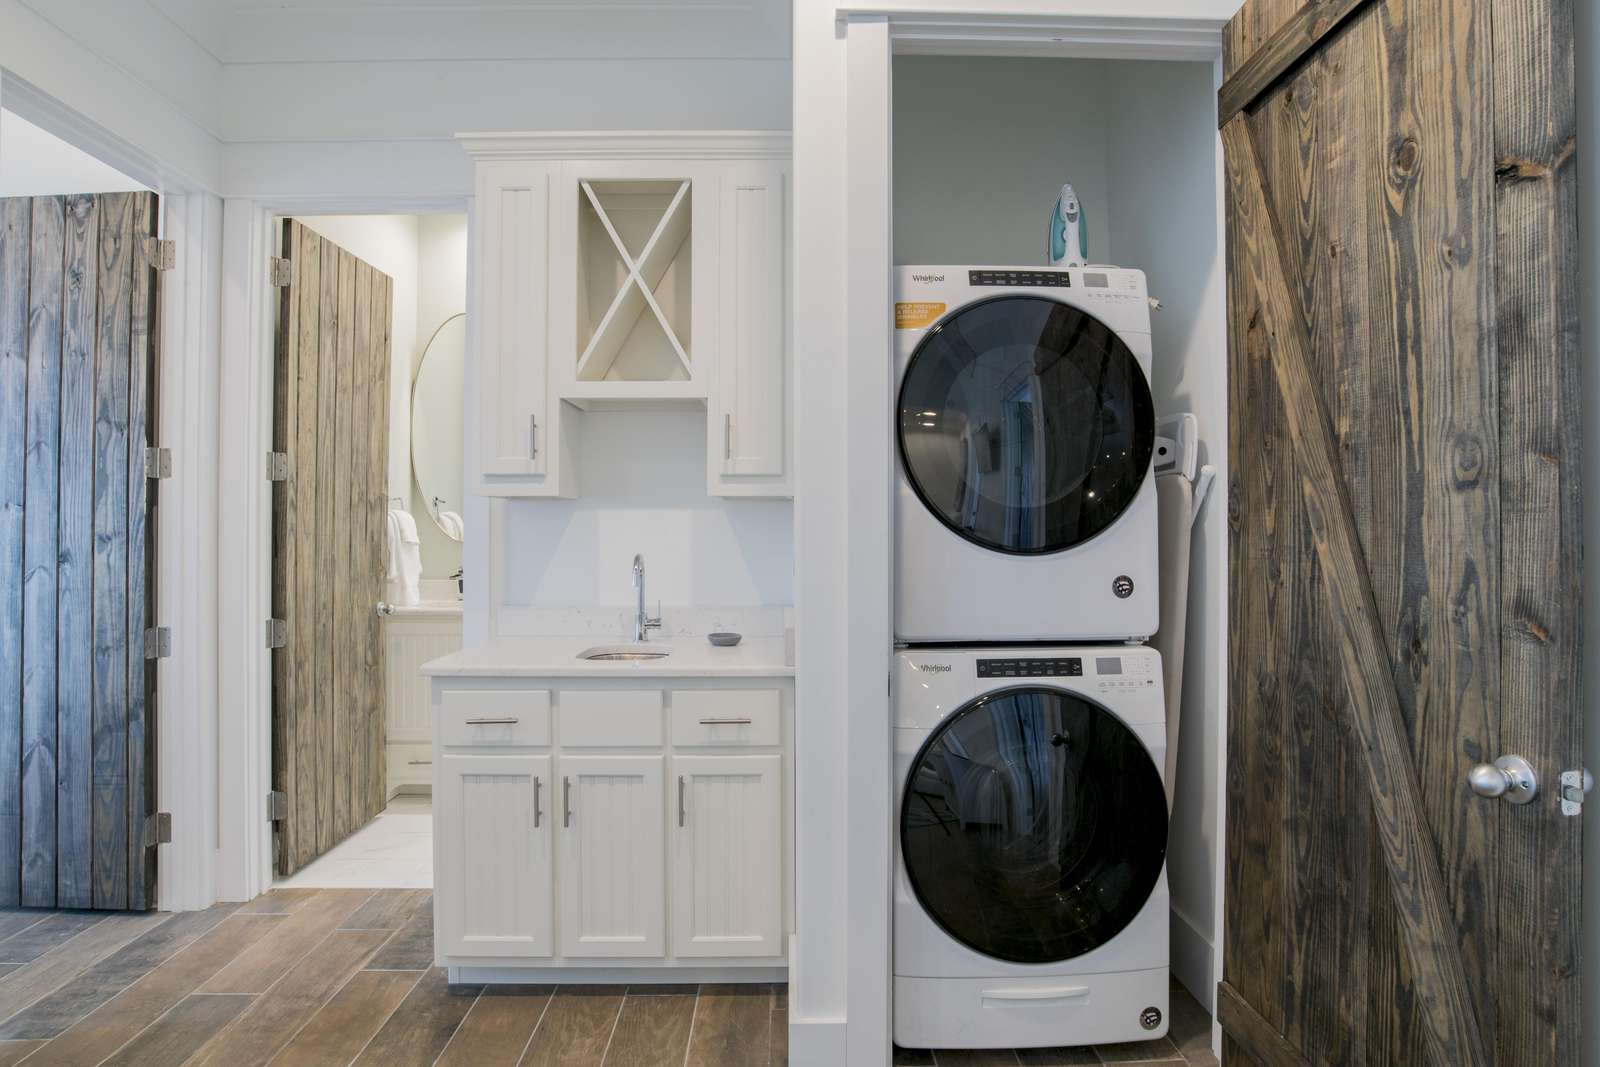 2 Full Sets of Stack Washer and Dryers. 1 on 2nd floor and 1 on 3rd floor.